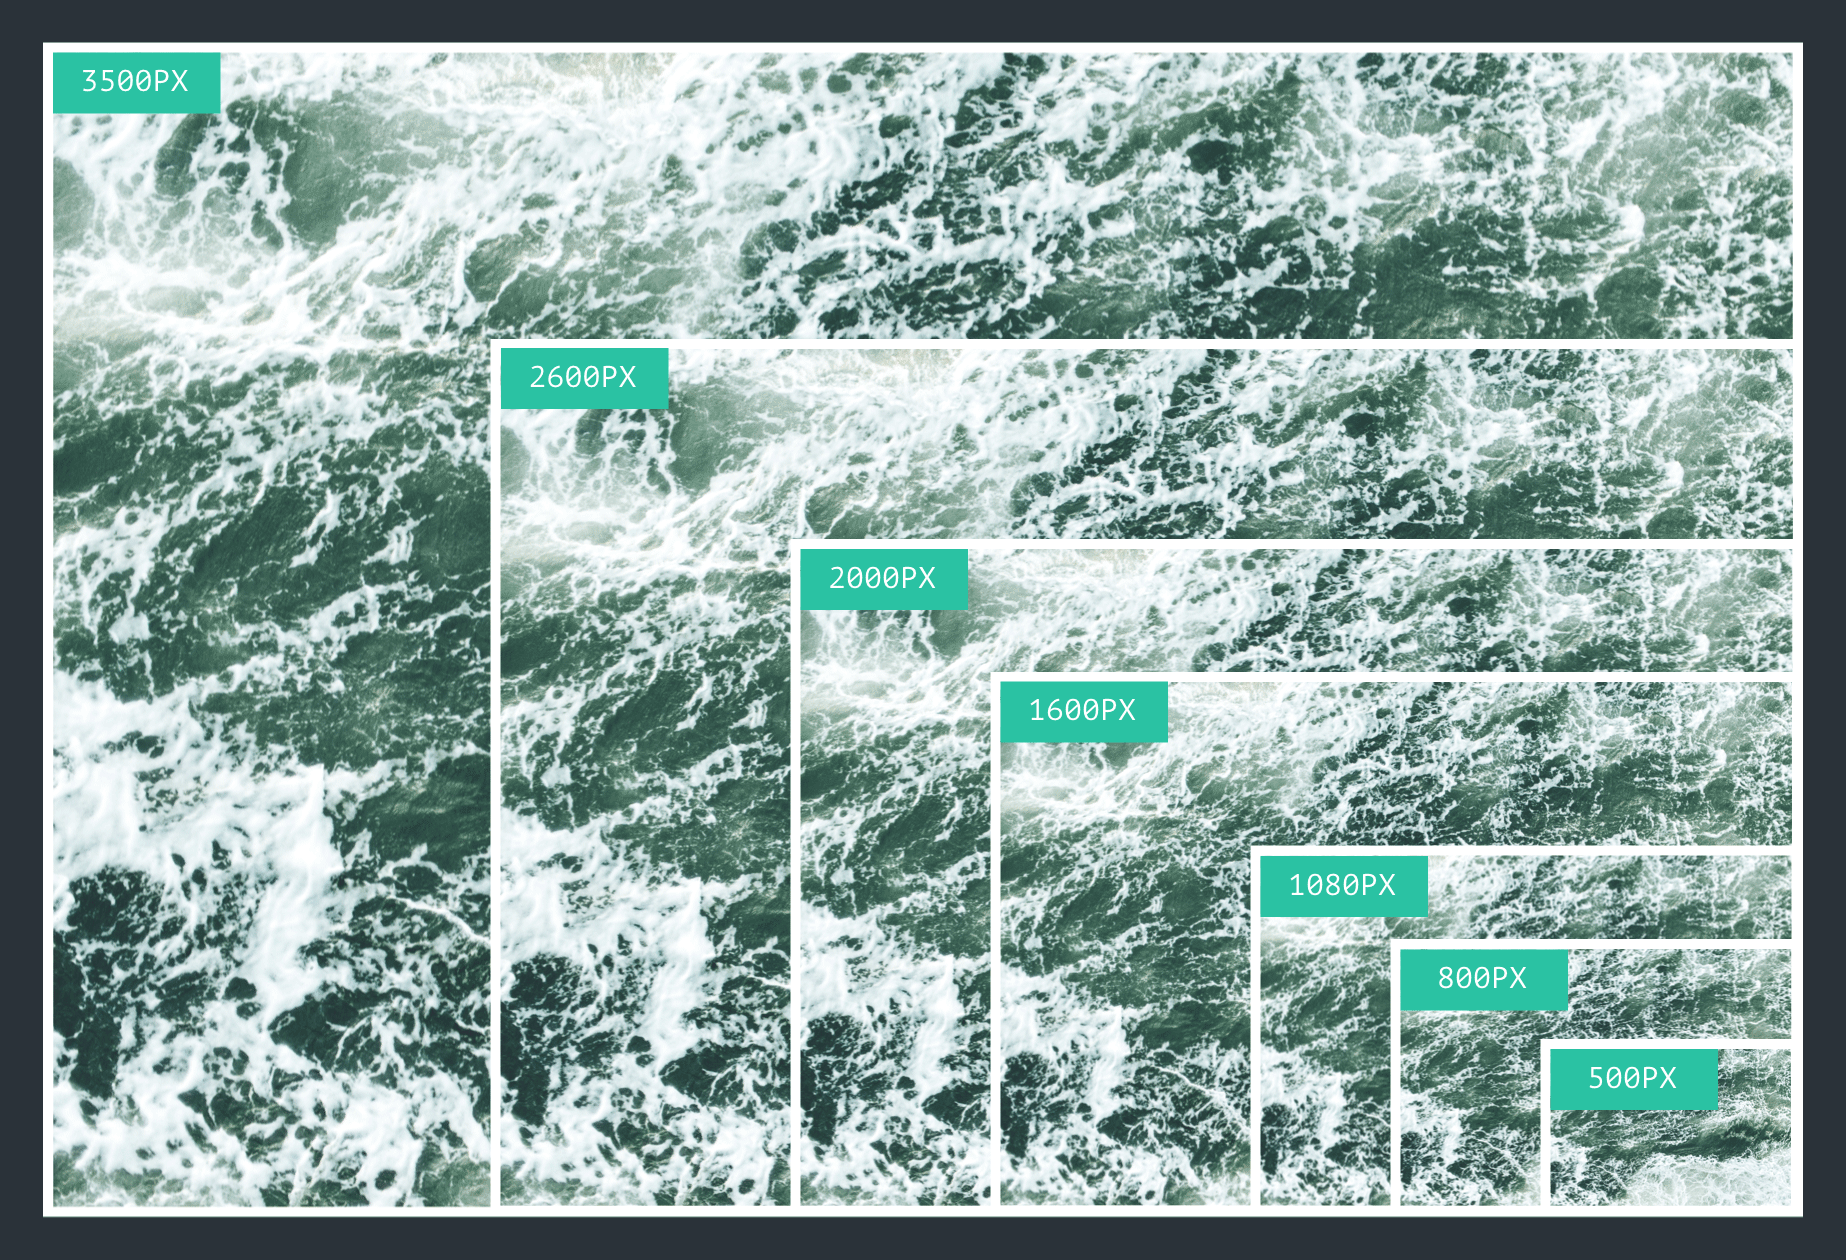 An example image of the ocean being scaled down from 3500 to 500px